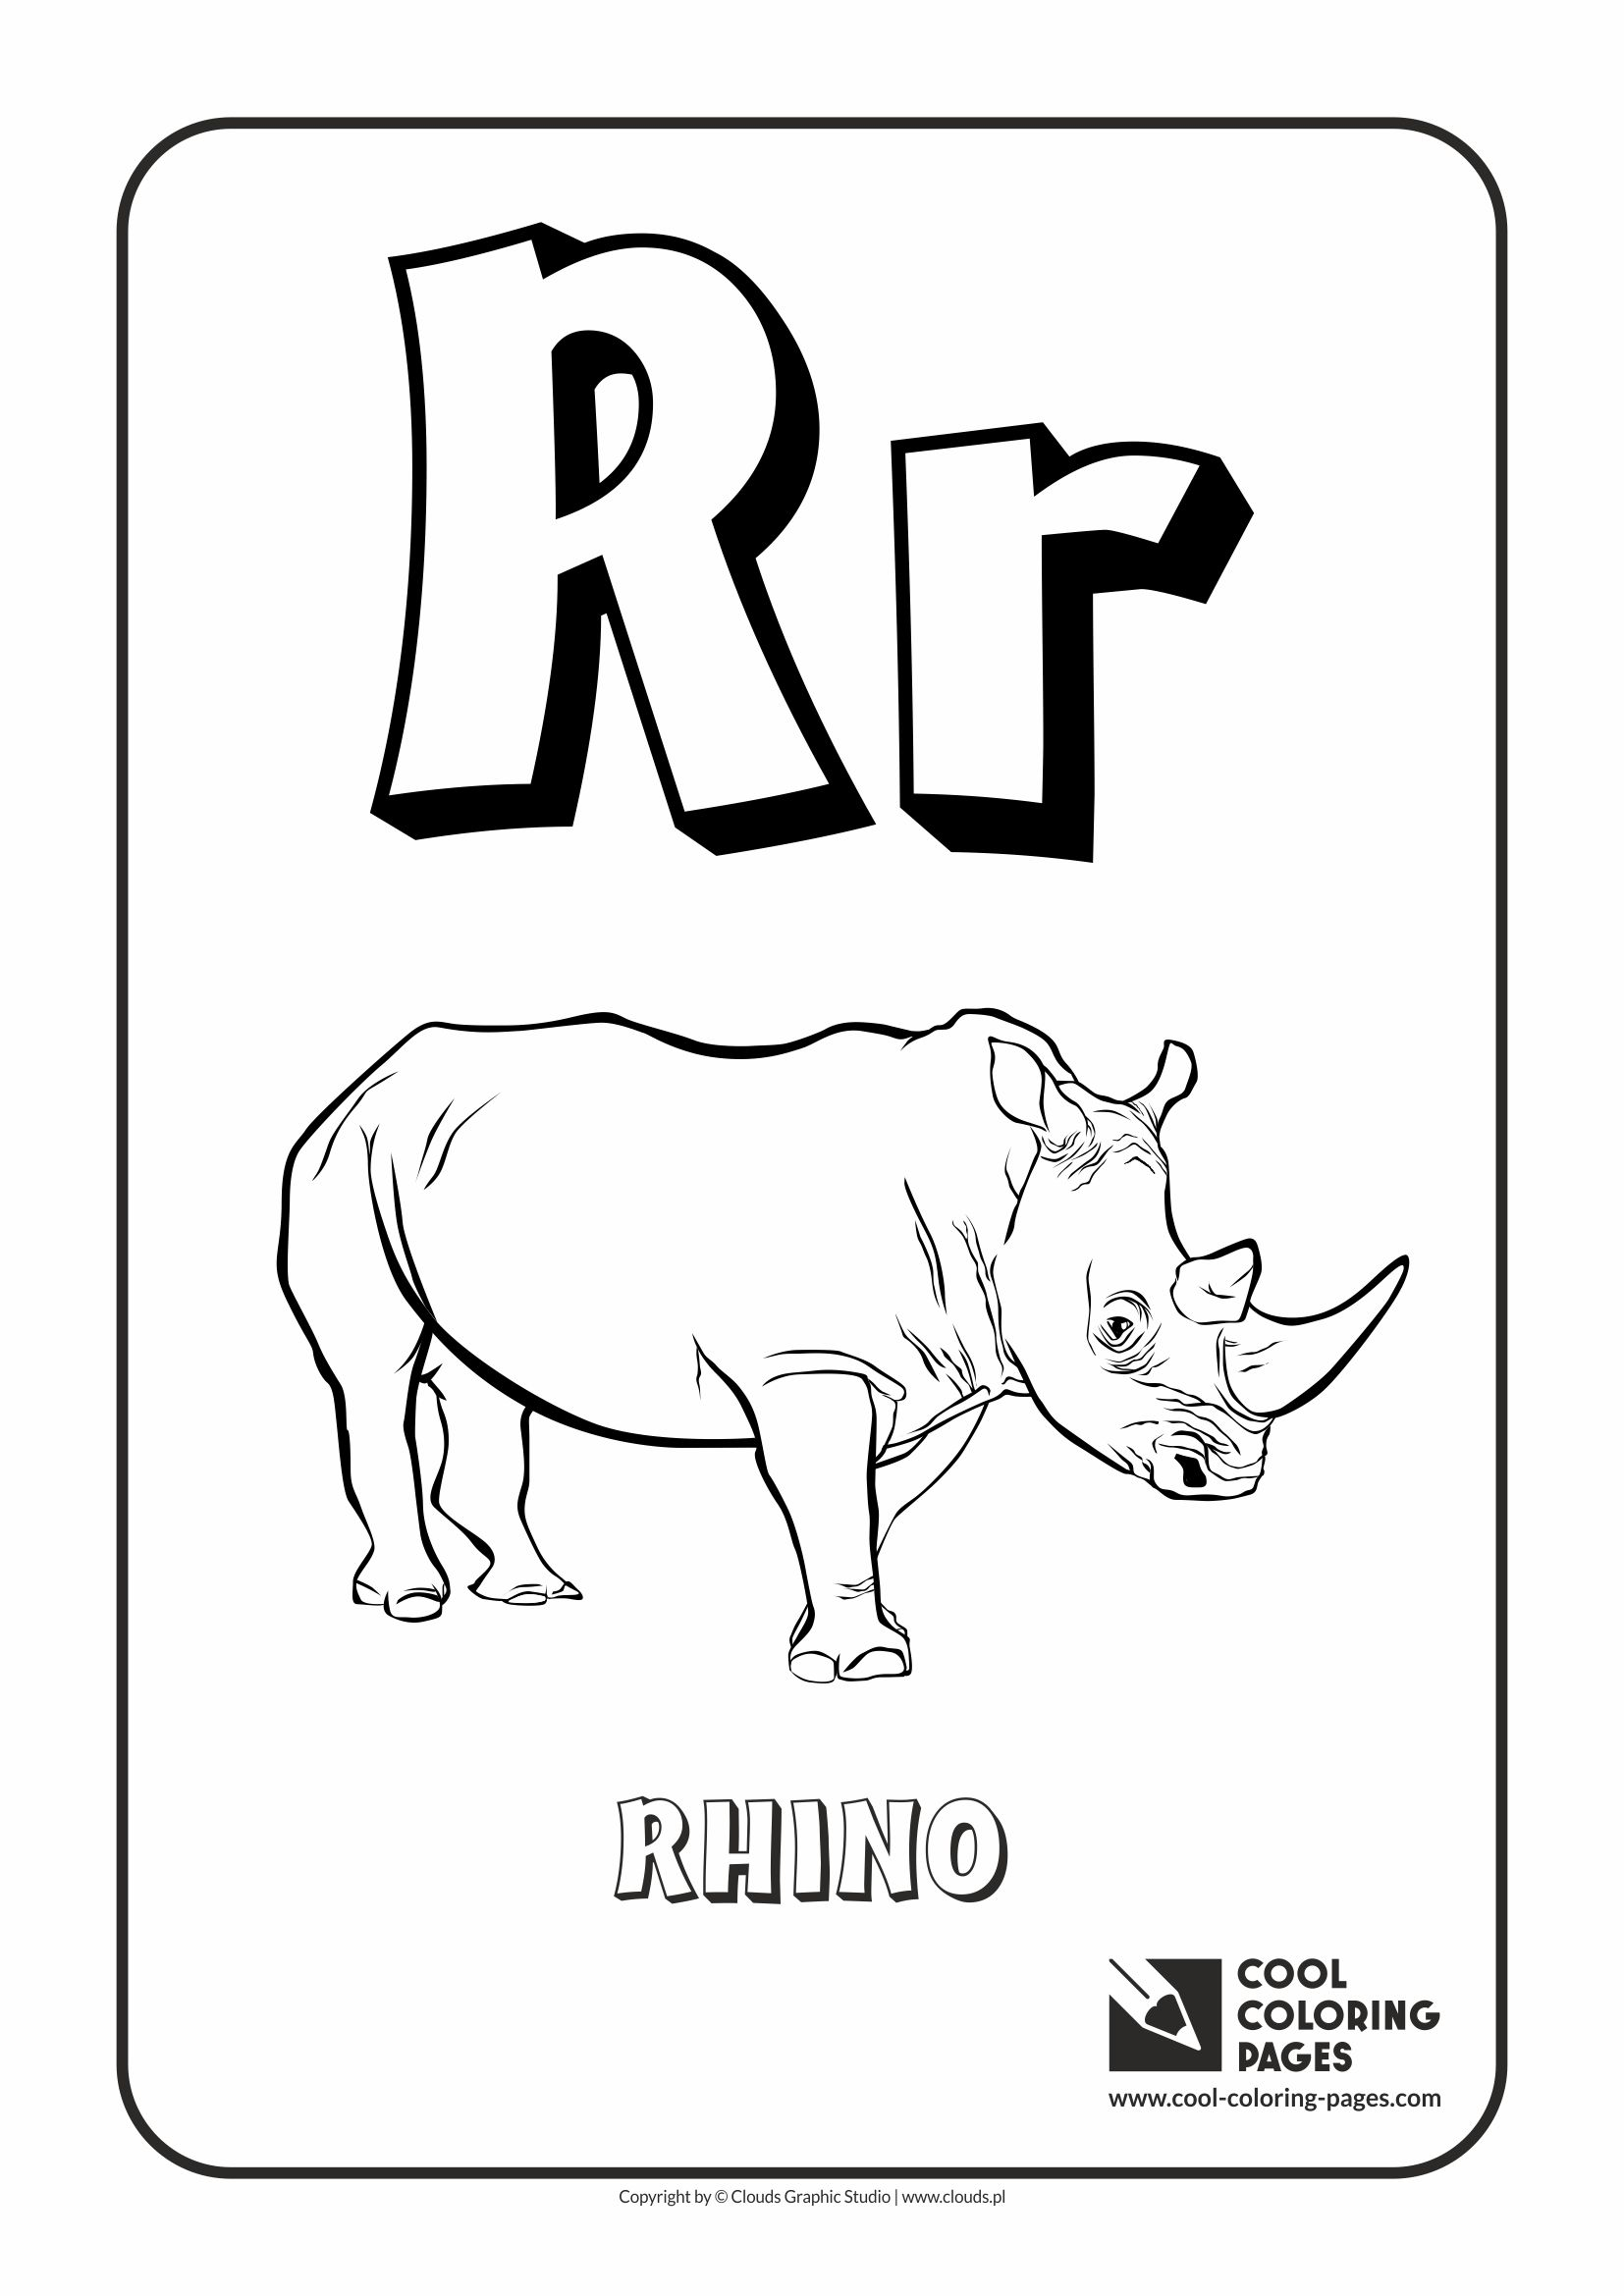 Spanish Alphabet Coloring Pages Printable : Coloring page for letter r pages